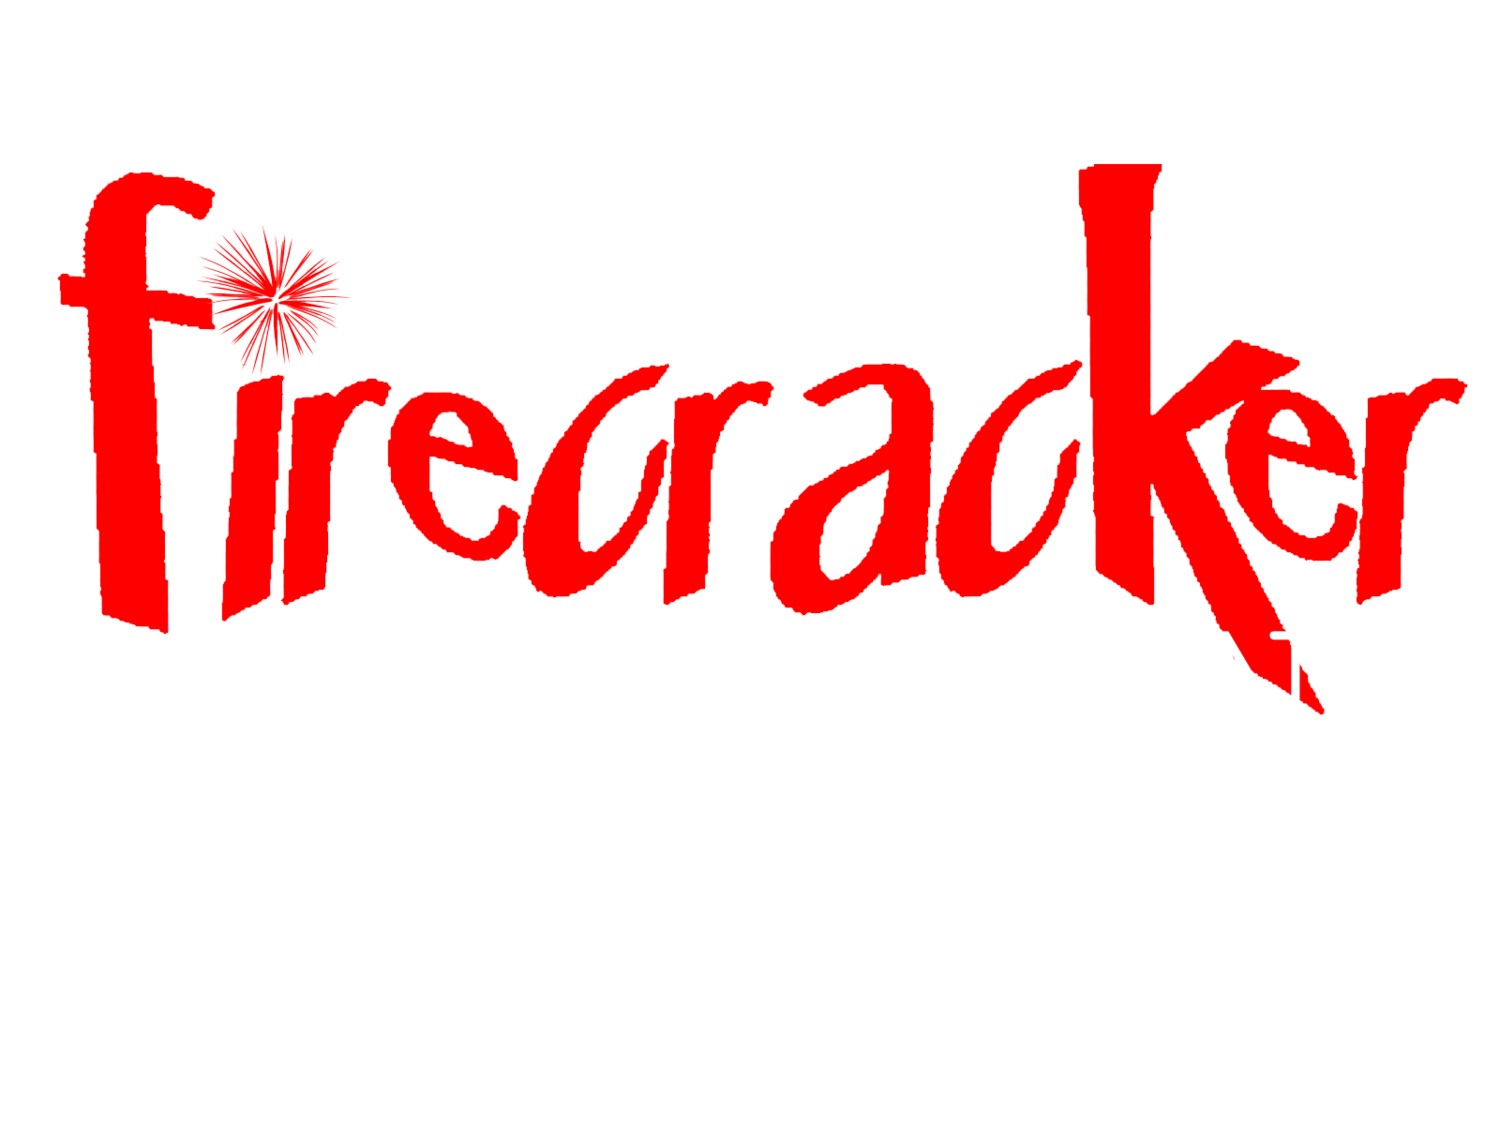 Firecracker Department